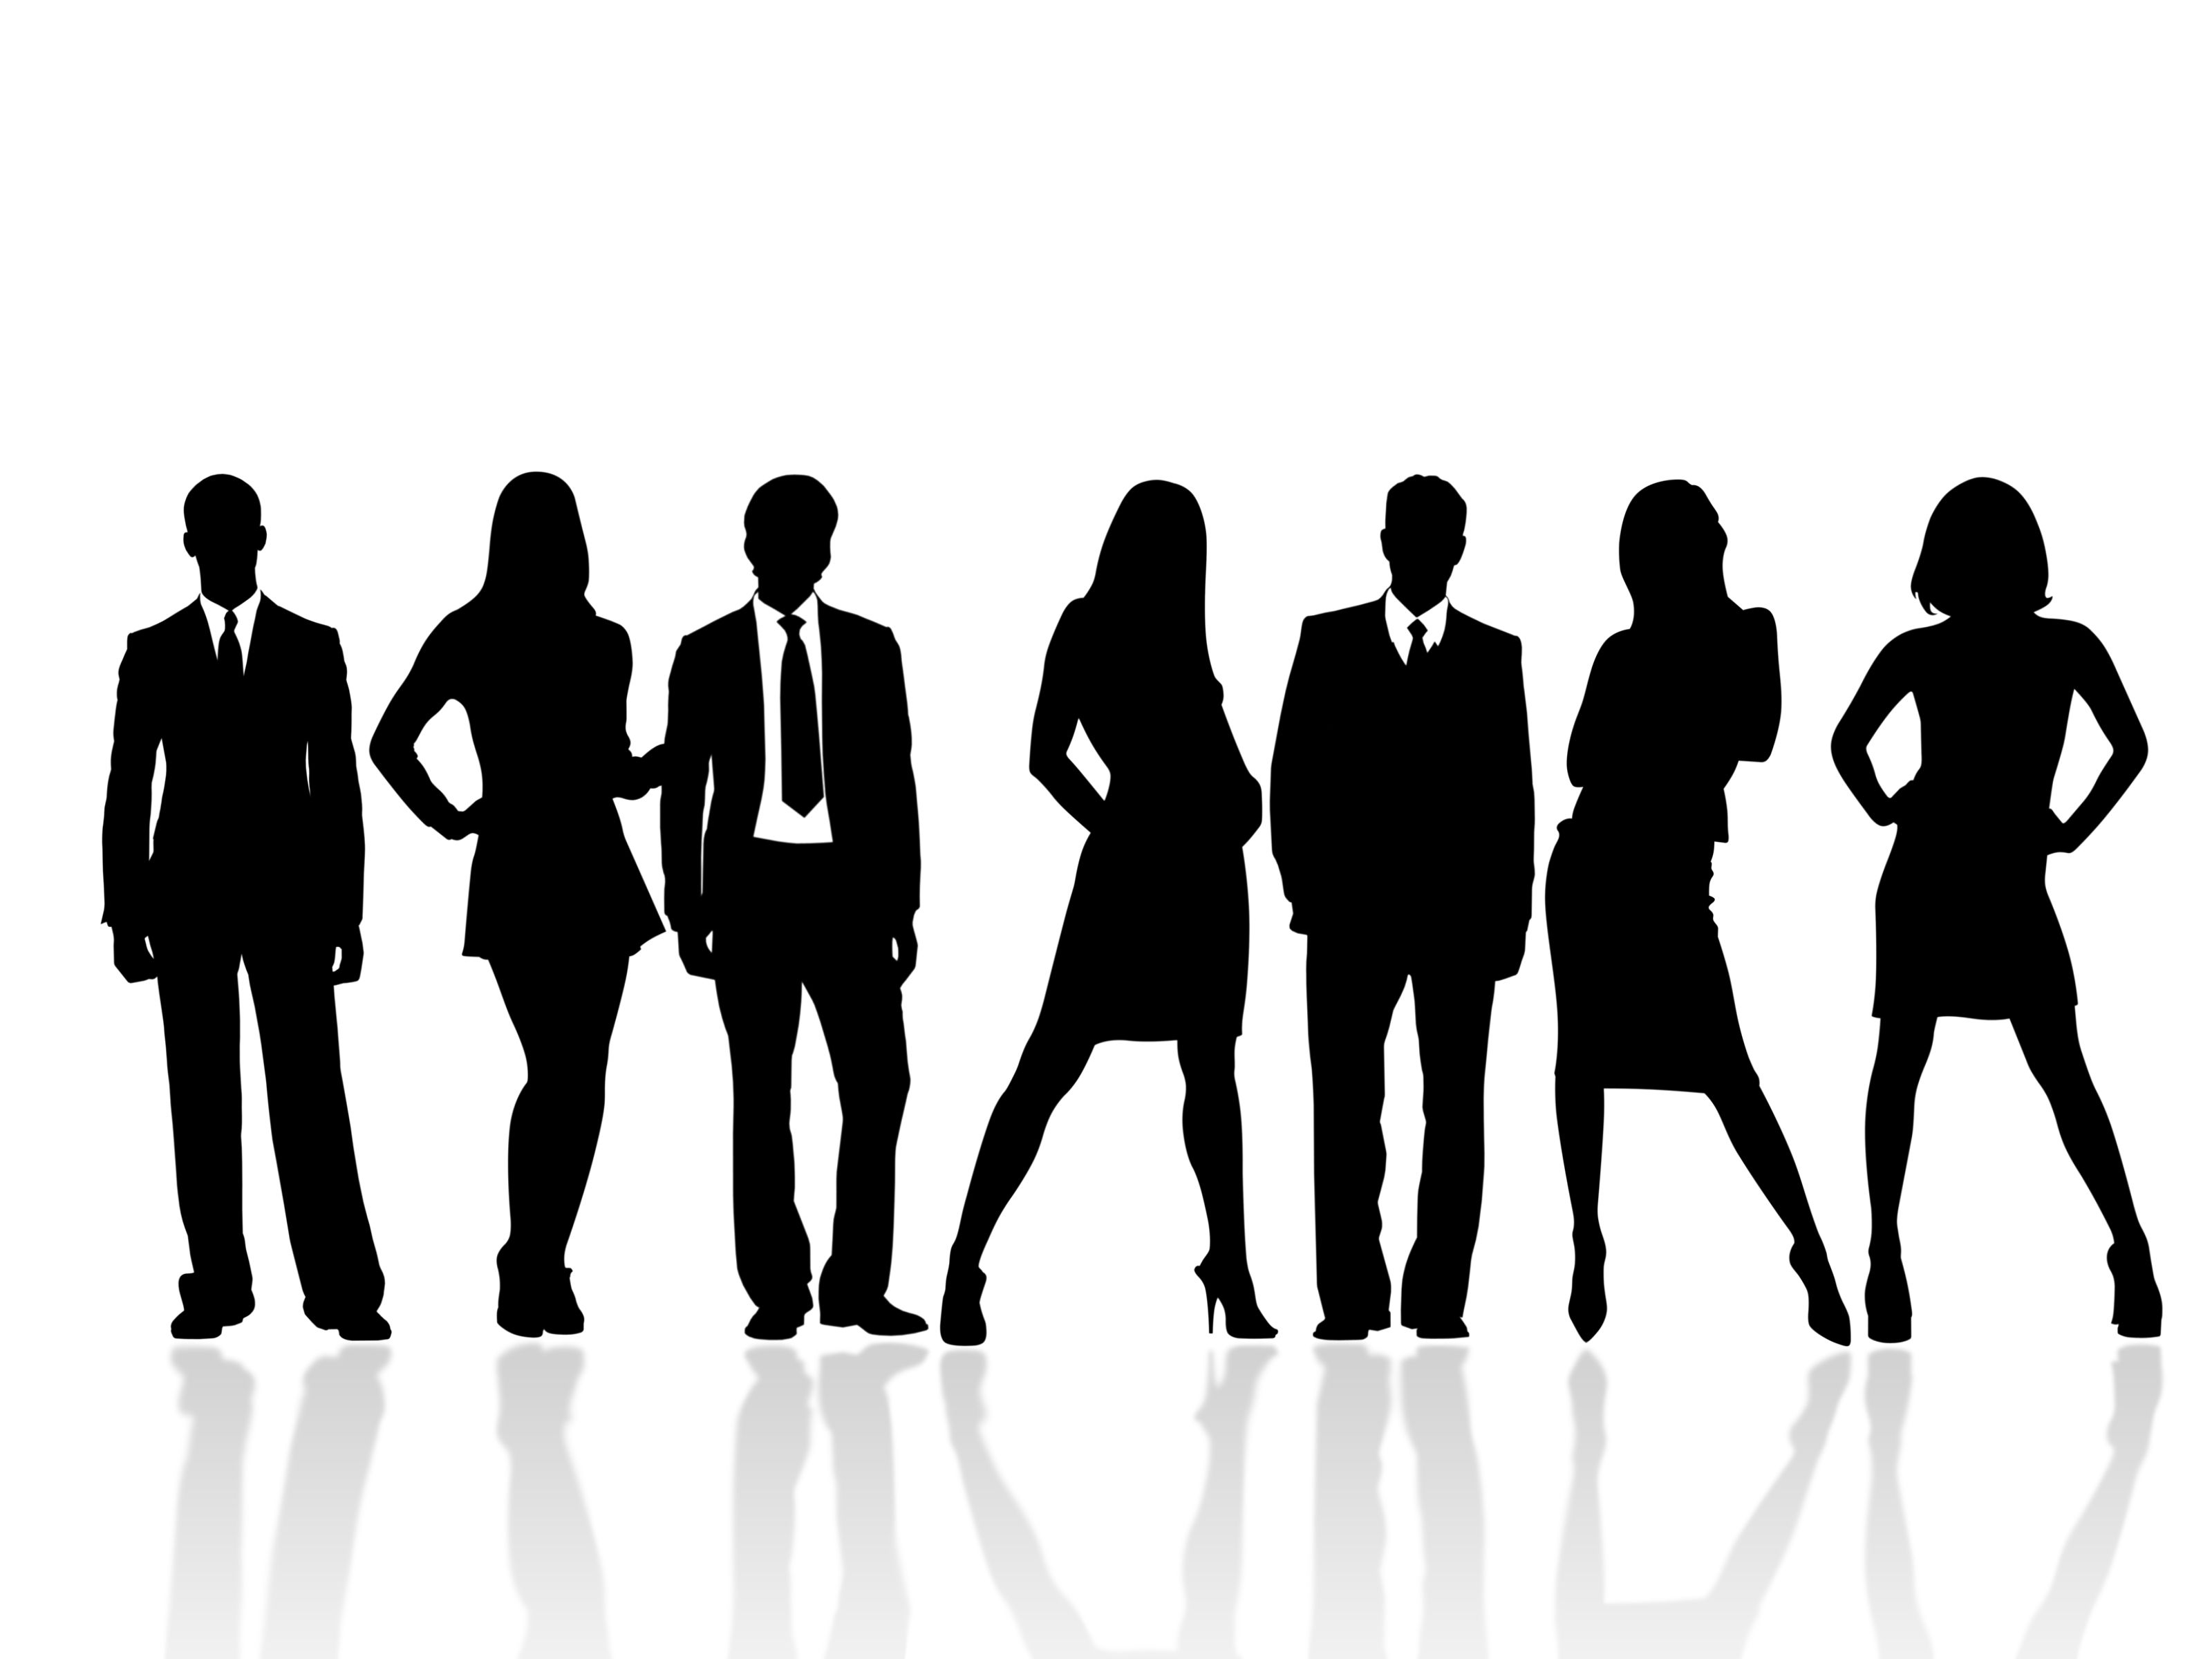 our-team.jpg | Website images | Pinterest | Silhouettes, String ... for Business People Silhouette Png  126eri